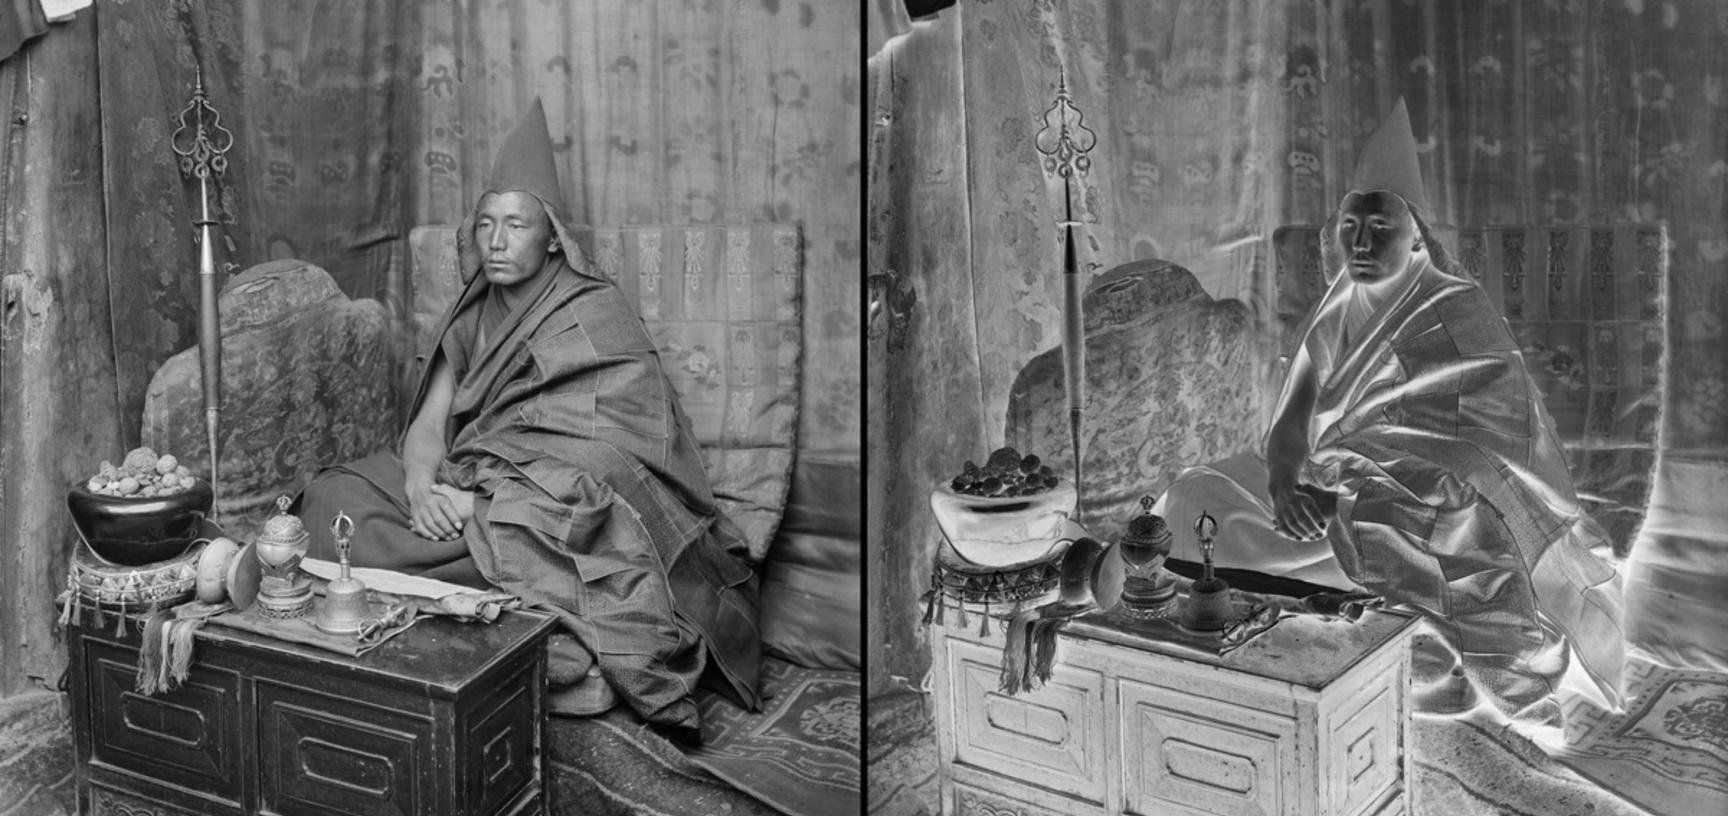 Gelukpa incarnation lama with his religious implements. Photograph by Rabden Lepcha. 1920–1921.